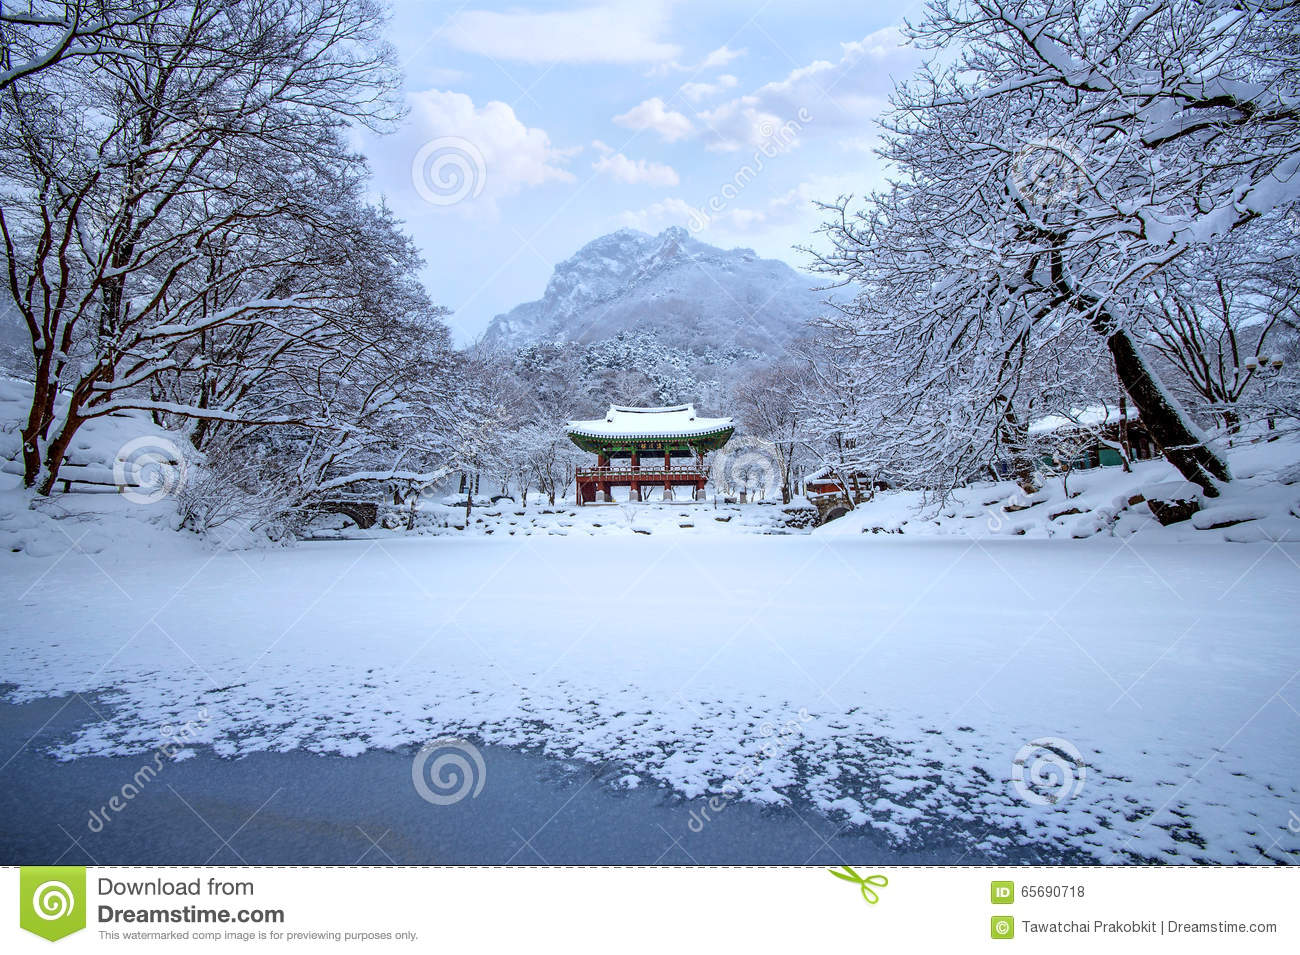 Baekyangsa Temple And Falling Snow, Naejangsan Mountain In Winter.